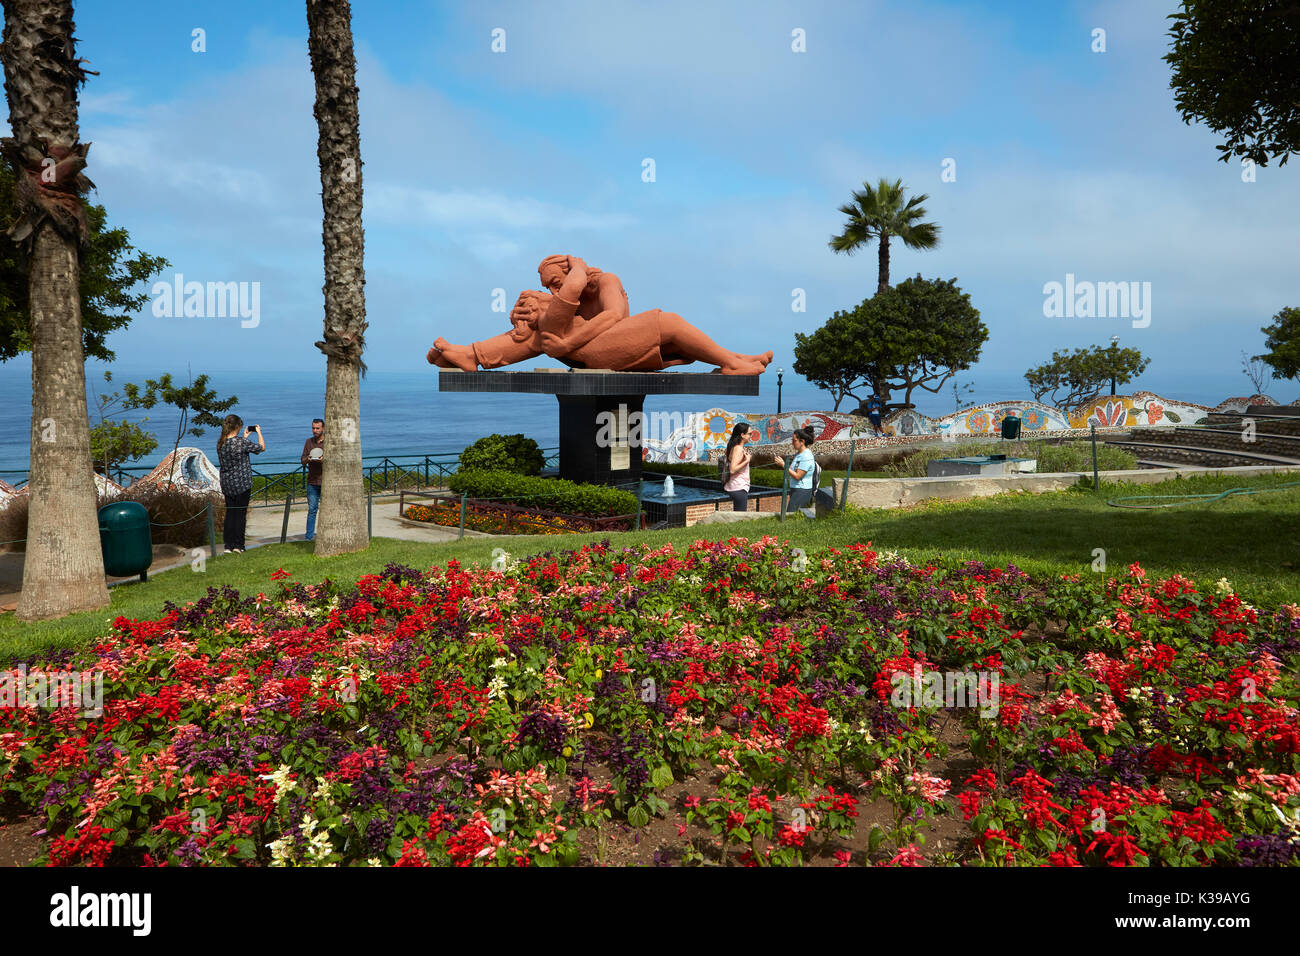 Flower garden and El Beso (The Kiss) statue by Victor Delfin, Park del Amor (Park of Love), Miraflores, Lima, Peru, South America - Stock Image